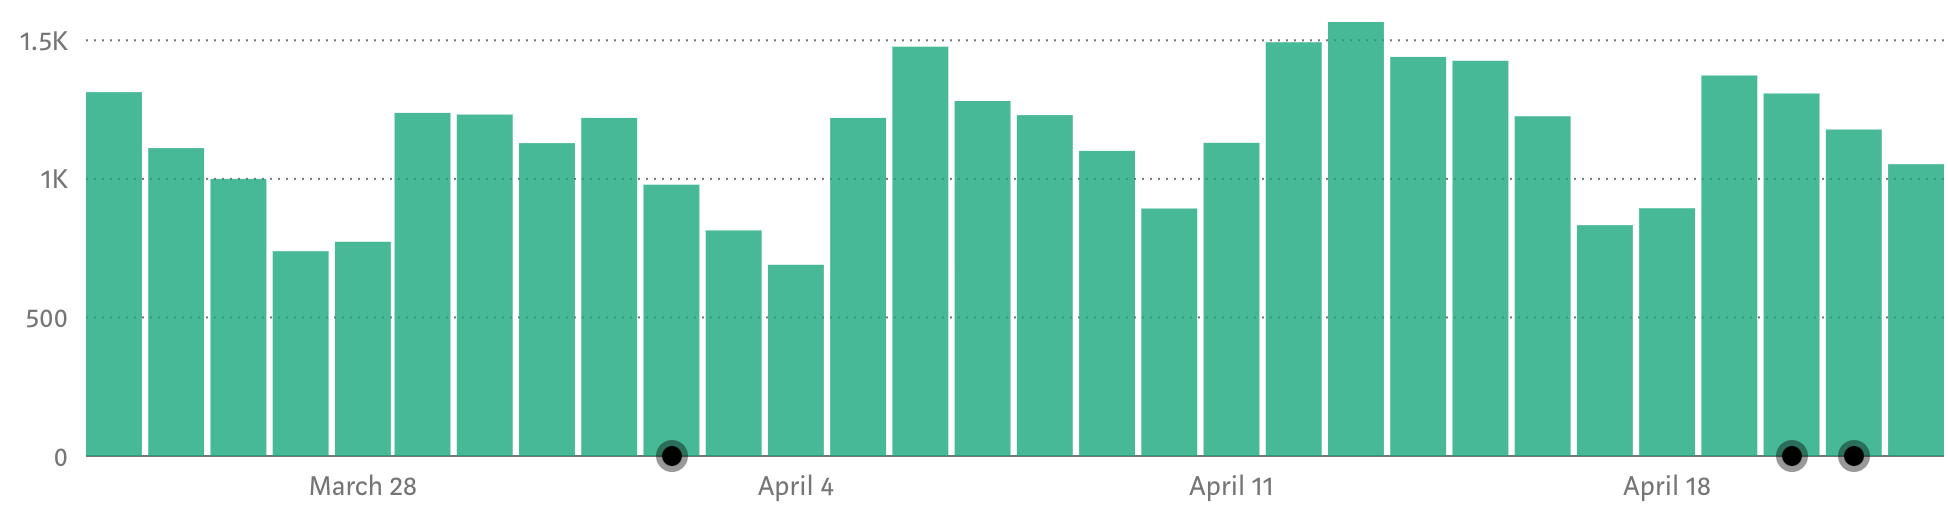 1.5K daily views in the last 30 days, with only 3 dots resembling published articles